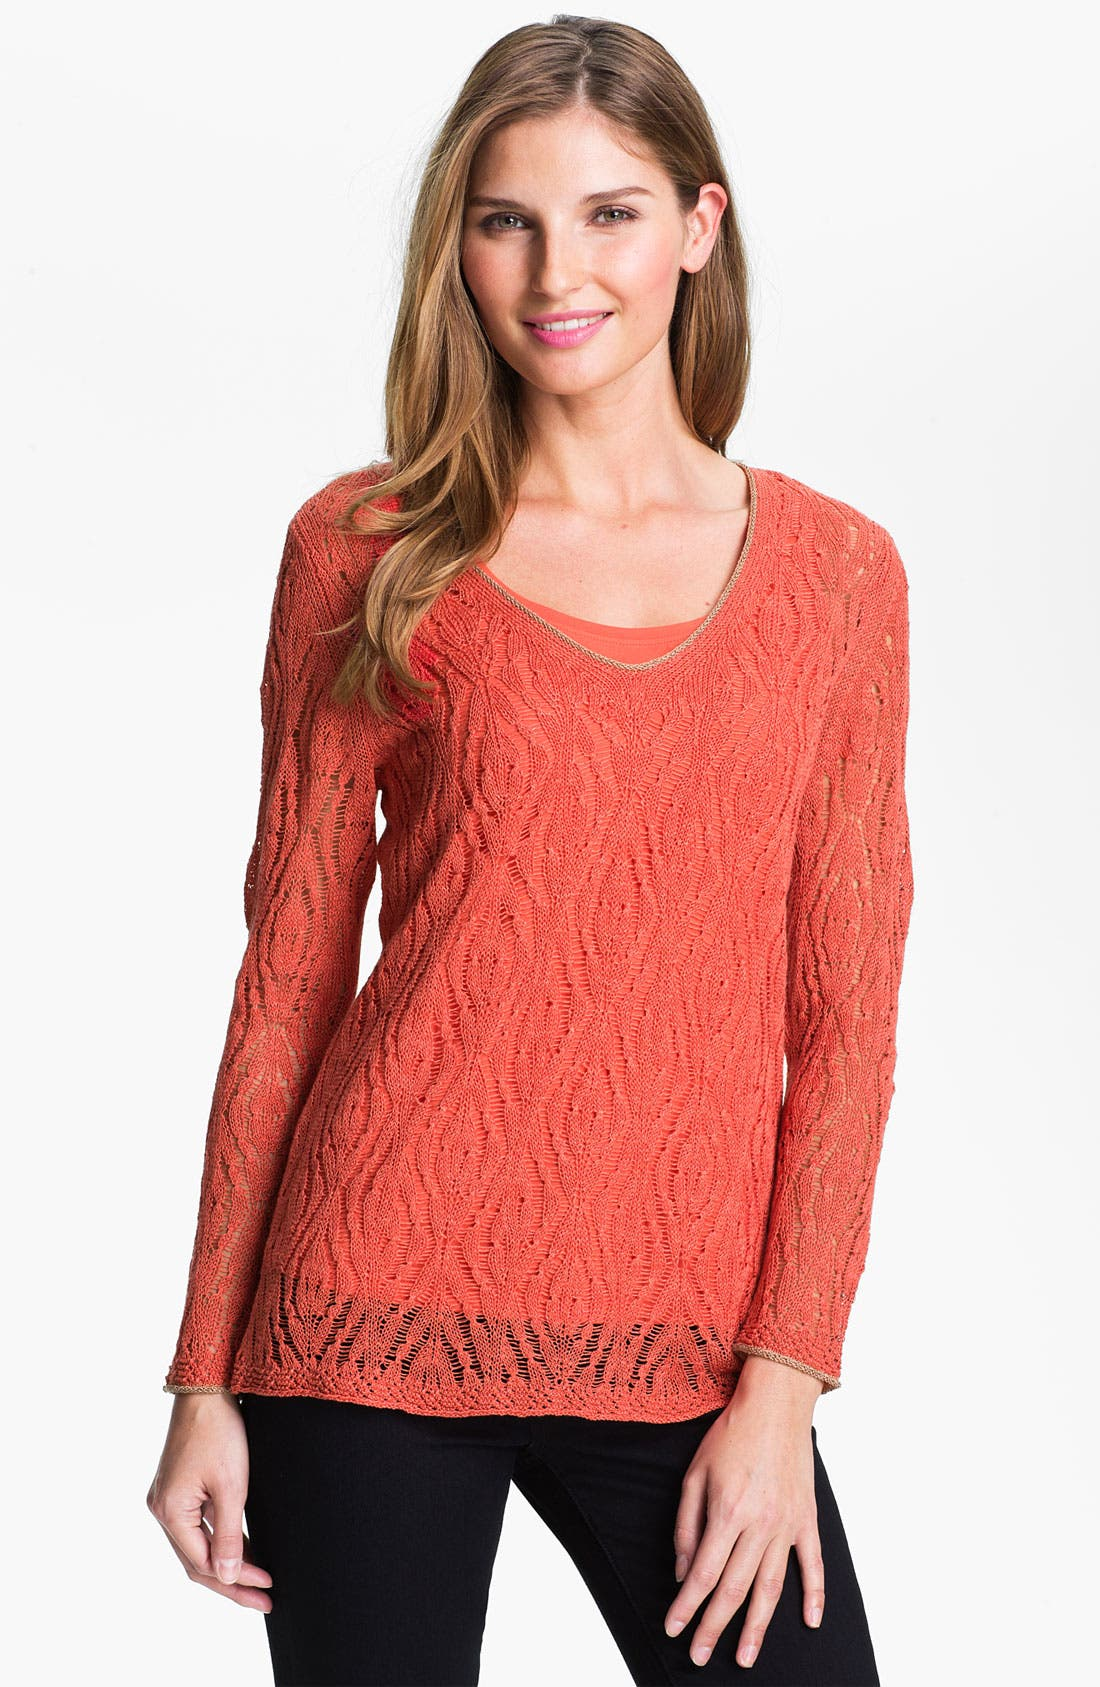 Alternate Image 1 Selected - Nic + Zoe 'Starfish' Sweater (Online Exclusive)